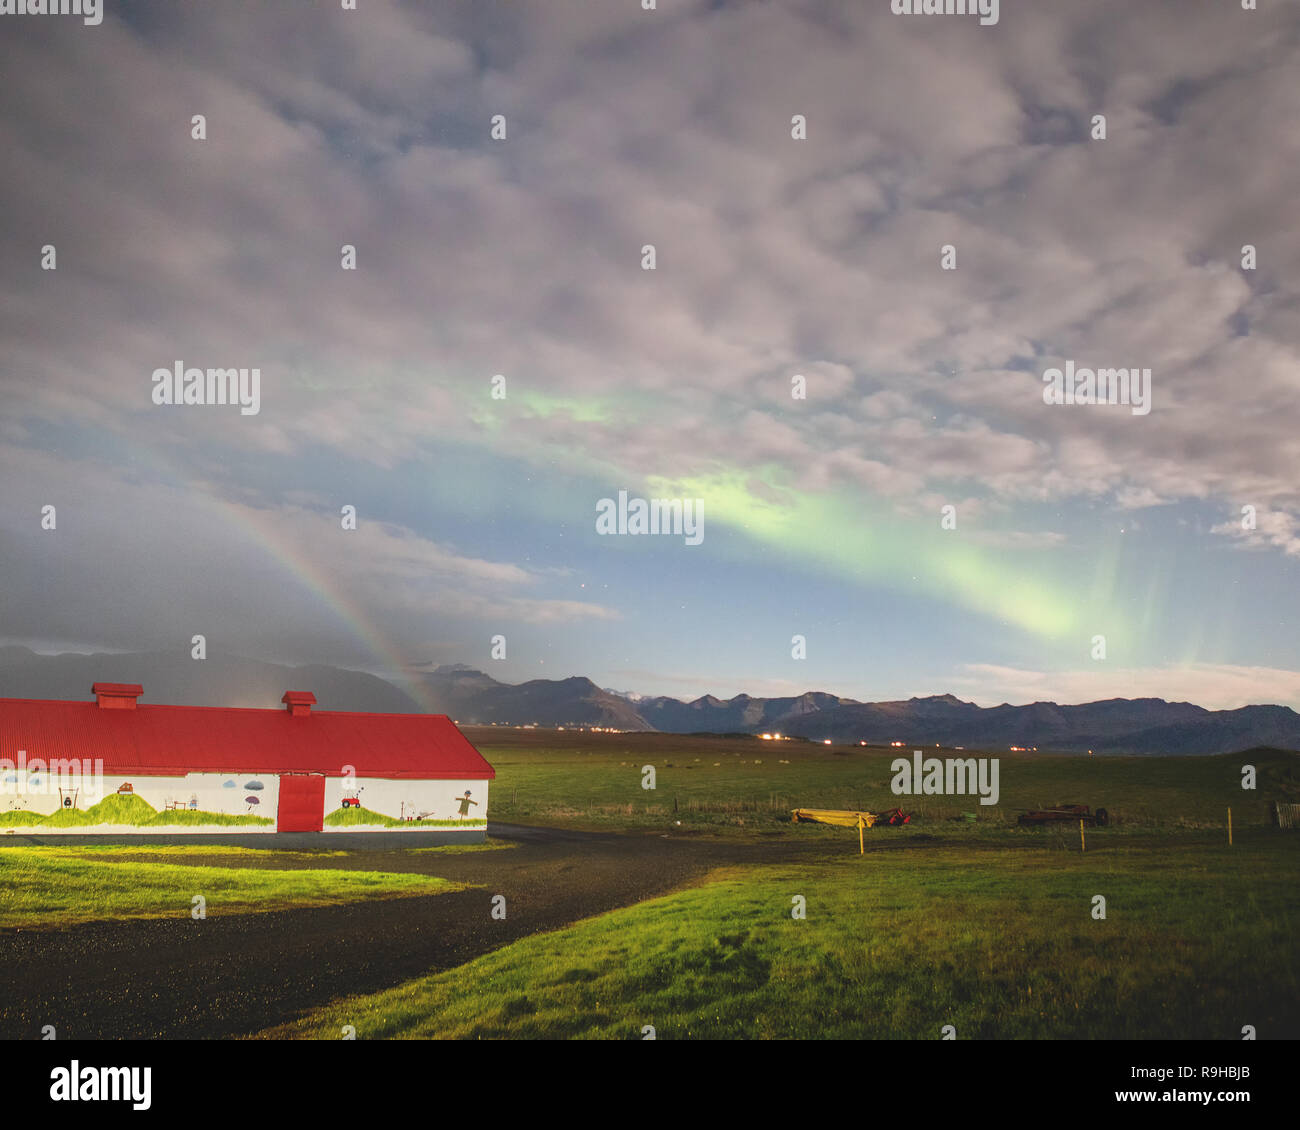 Moon light ranbow moonbow and aurora borealis northern lights country side rural farm Iceland - Stock Image